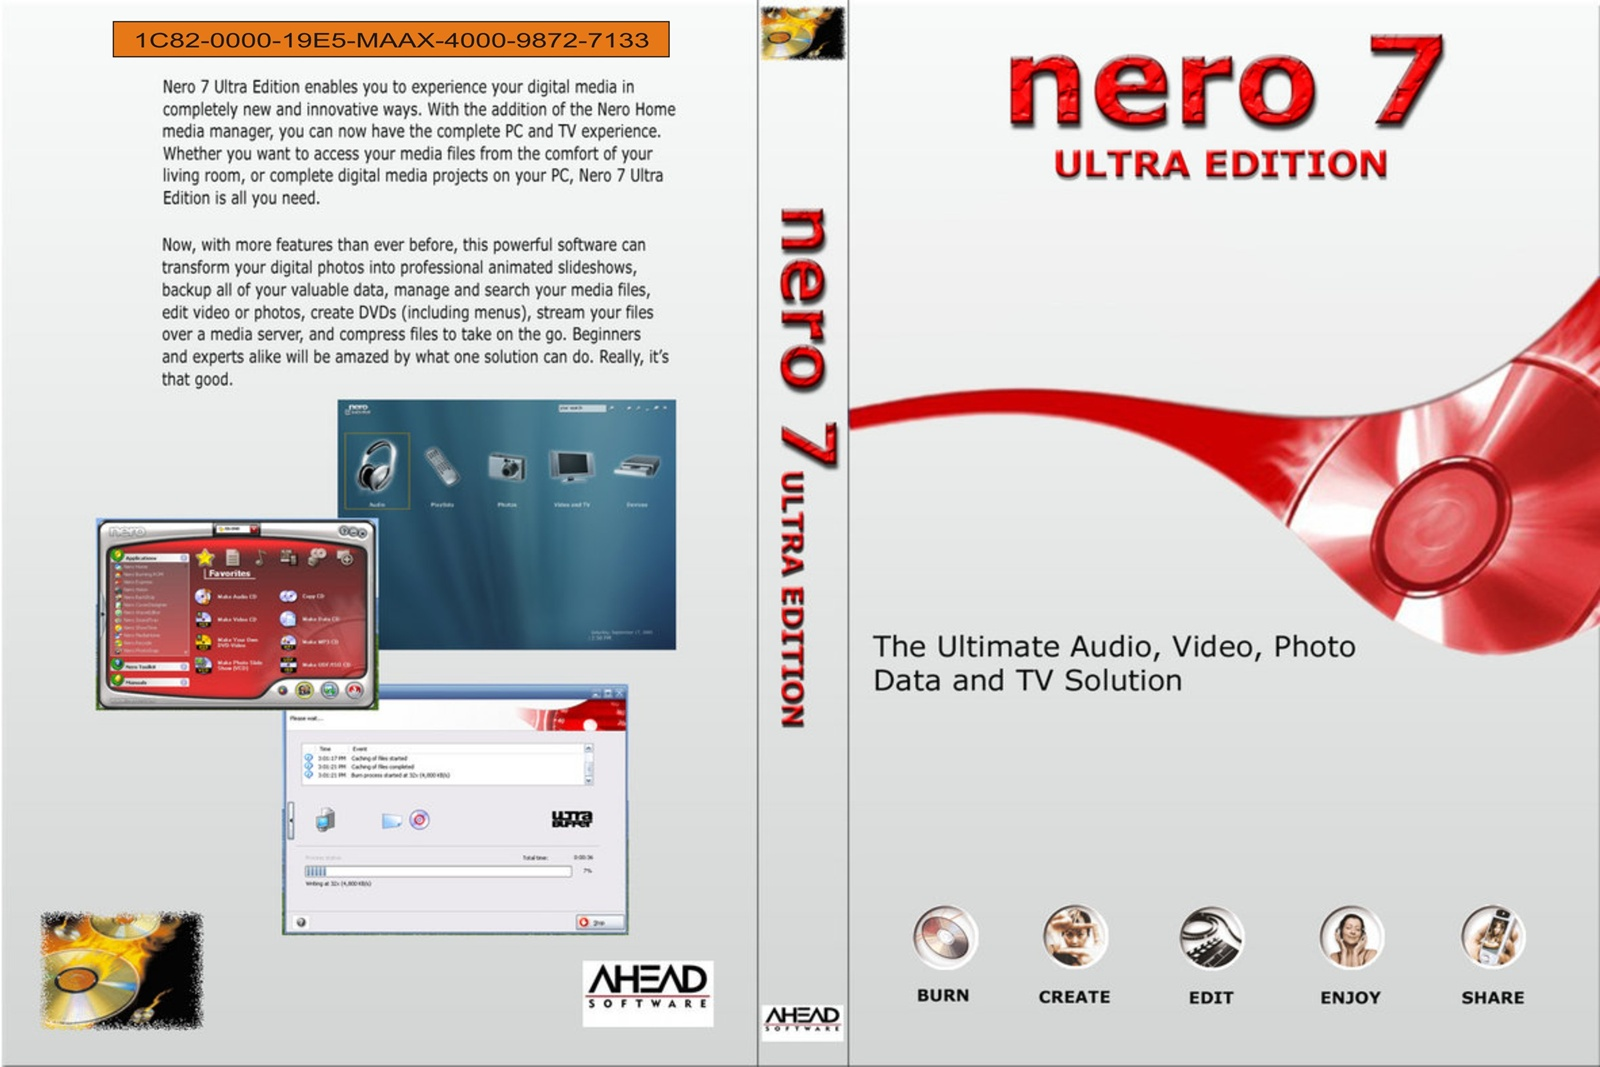 Nero portable 7 10 1 0 - bittorrent трекер rutracker org.